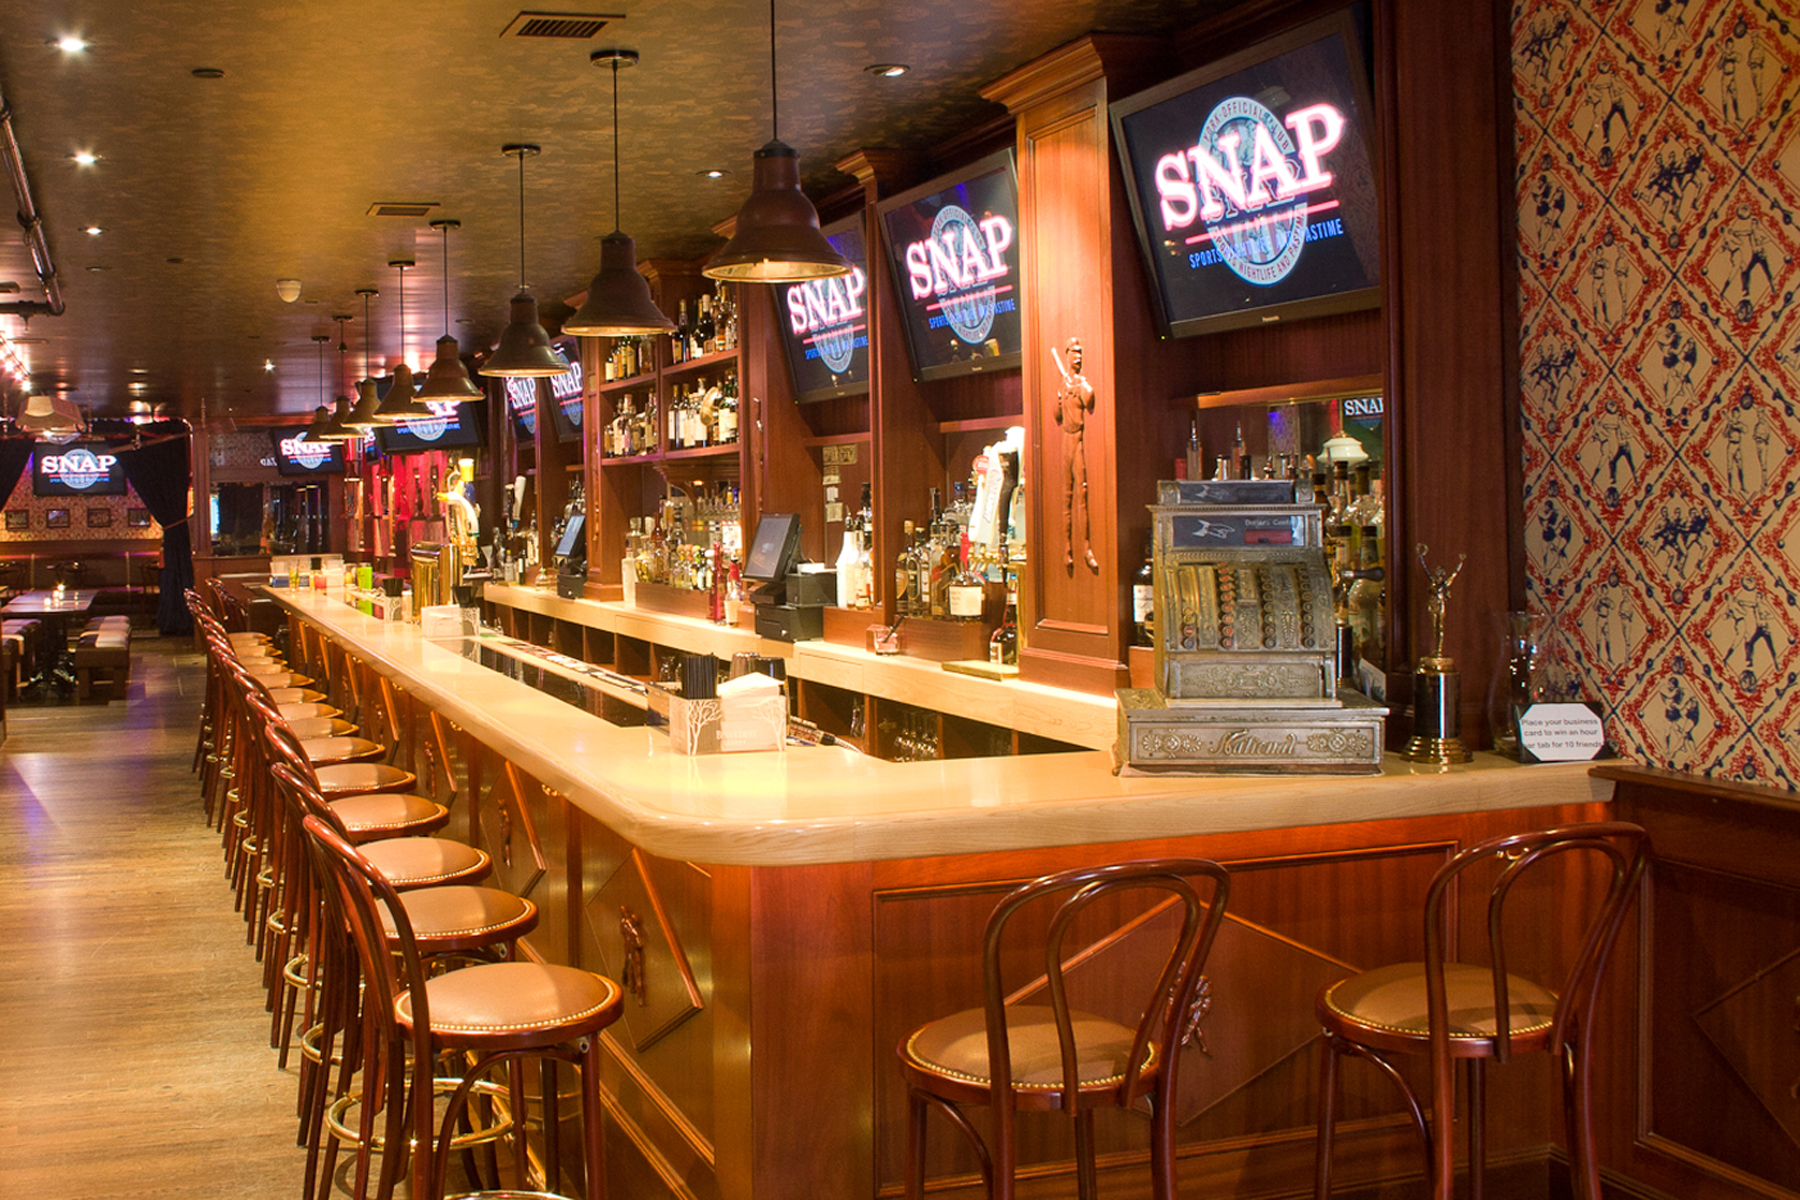 Find B & N Sports Bar in San Antonio with Address, Phone number from Yahoo US Local. Includes B & N Sports Bar Reviews, maps & directions to B & N Sports Bar 4/5(1).